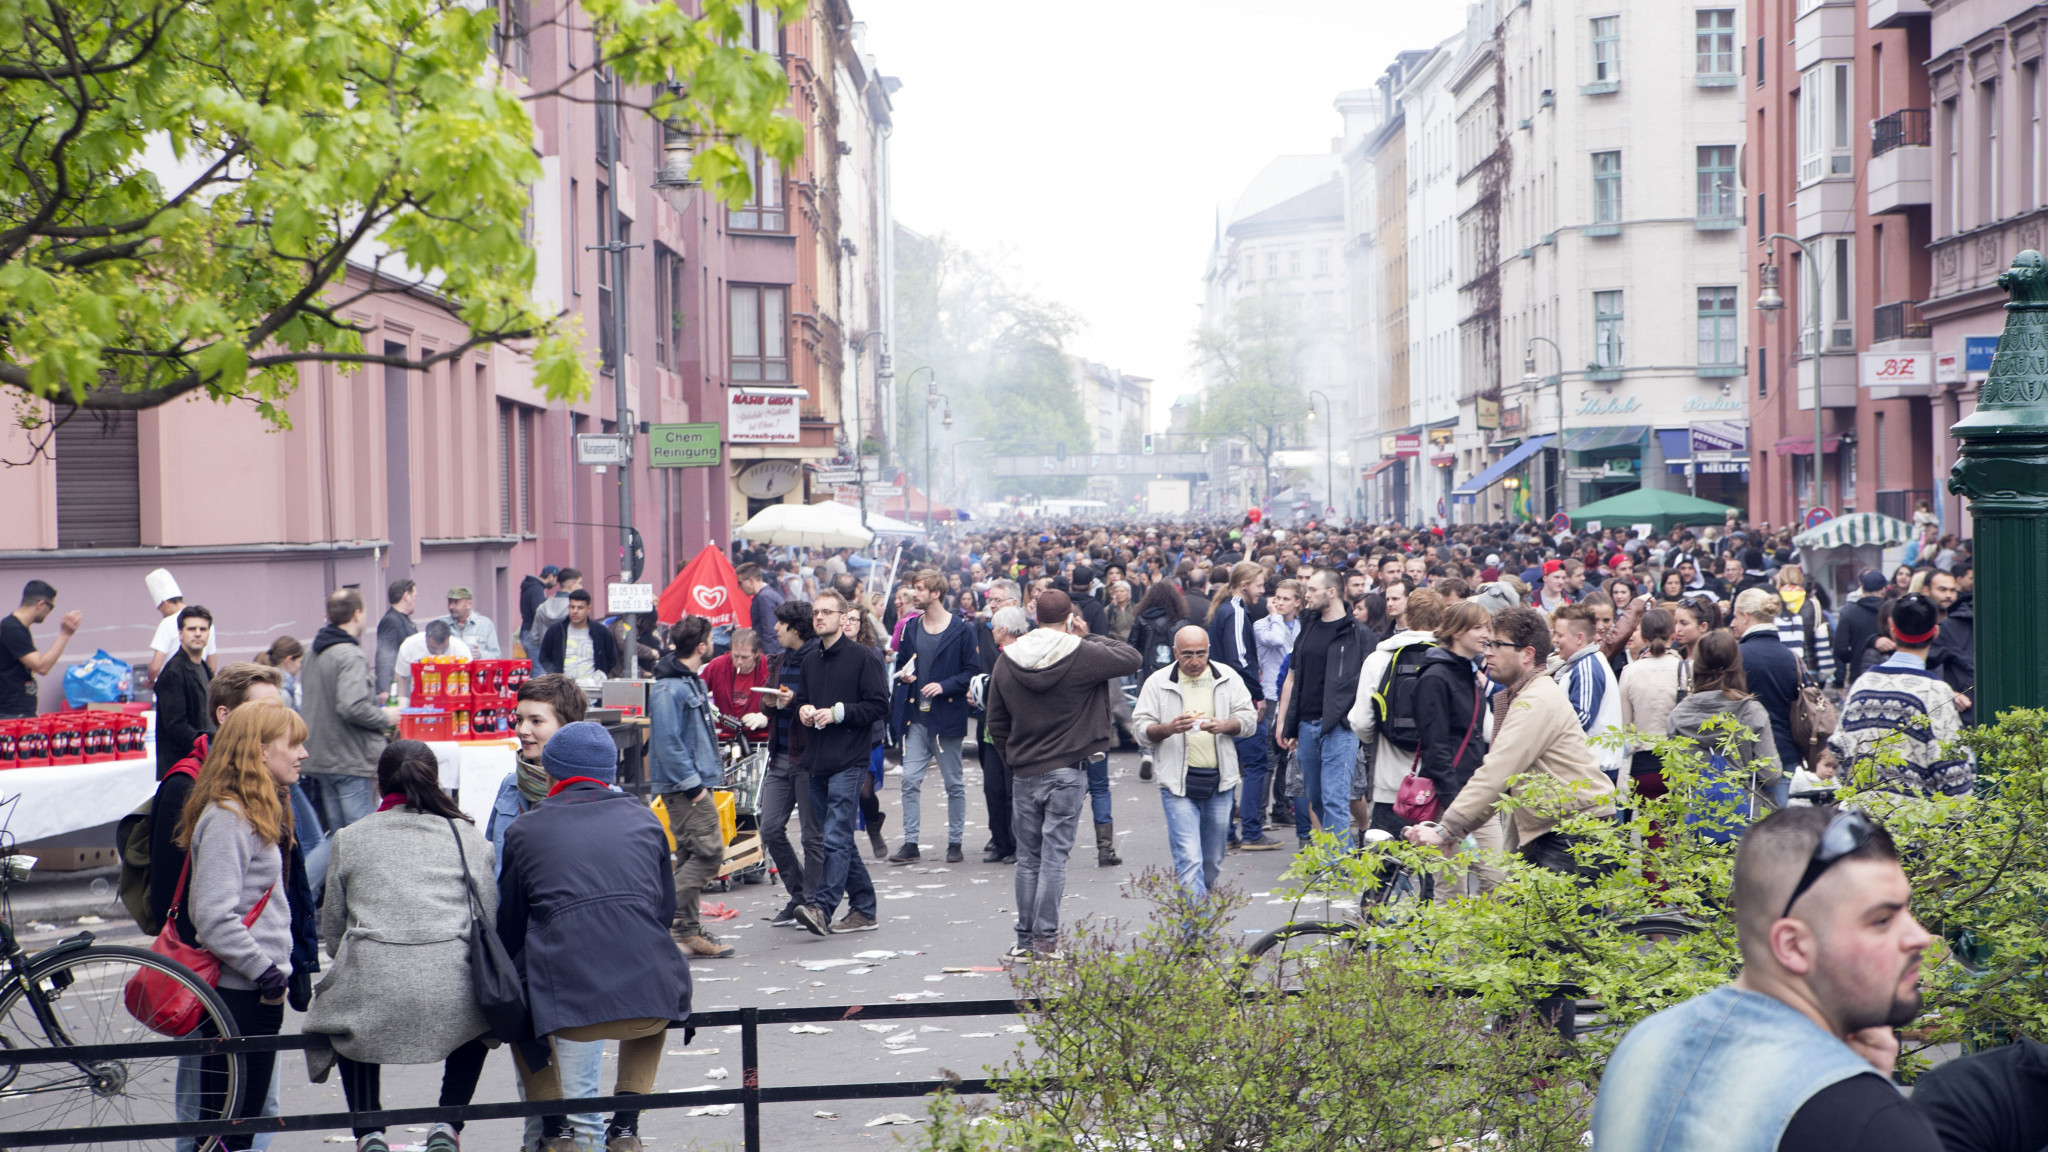 May Day in Berlin